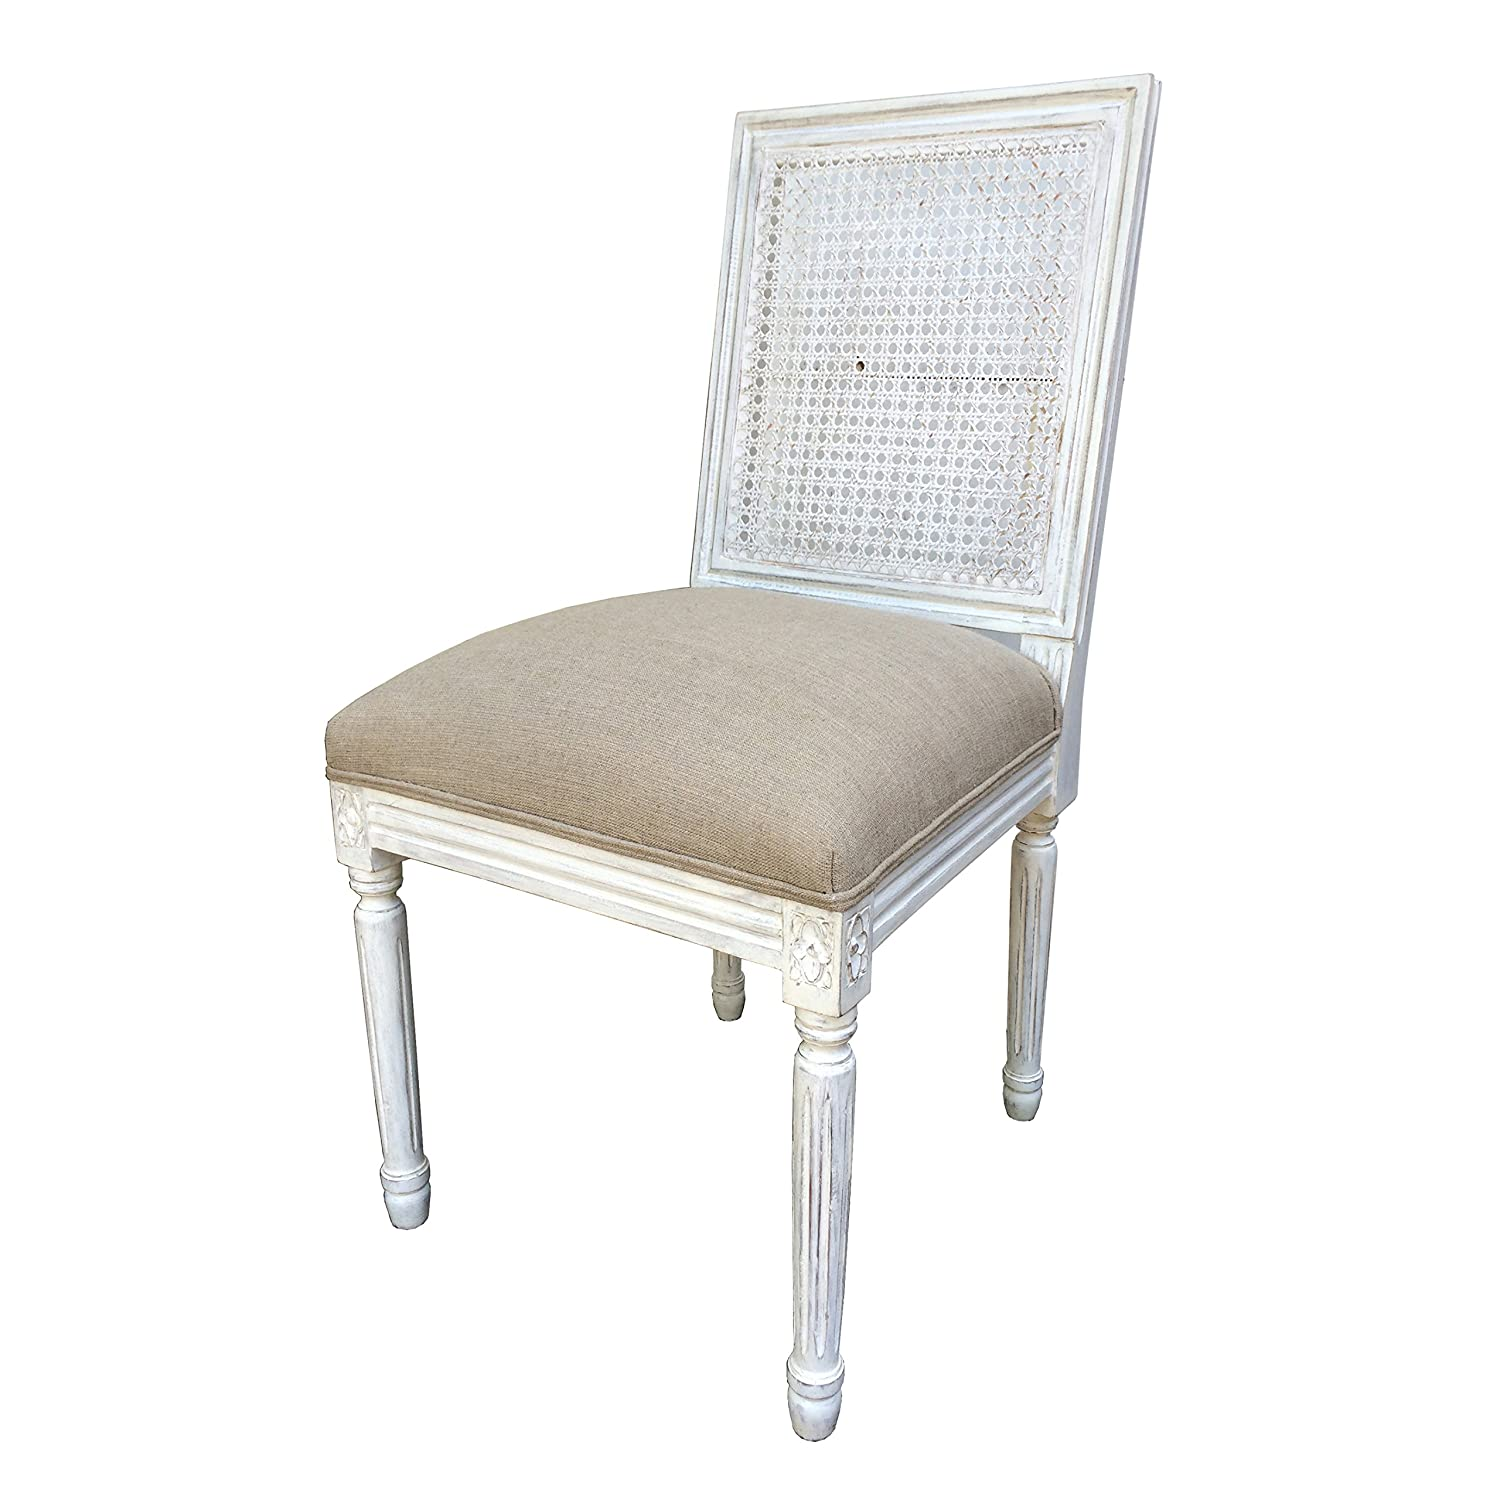 Miraculous French Style Cane Back Dining Chair In White Distressed Caraccident5 Cool Chair Designs And Ideas Caraccident5Info